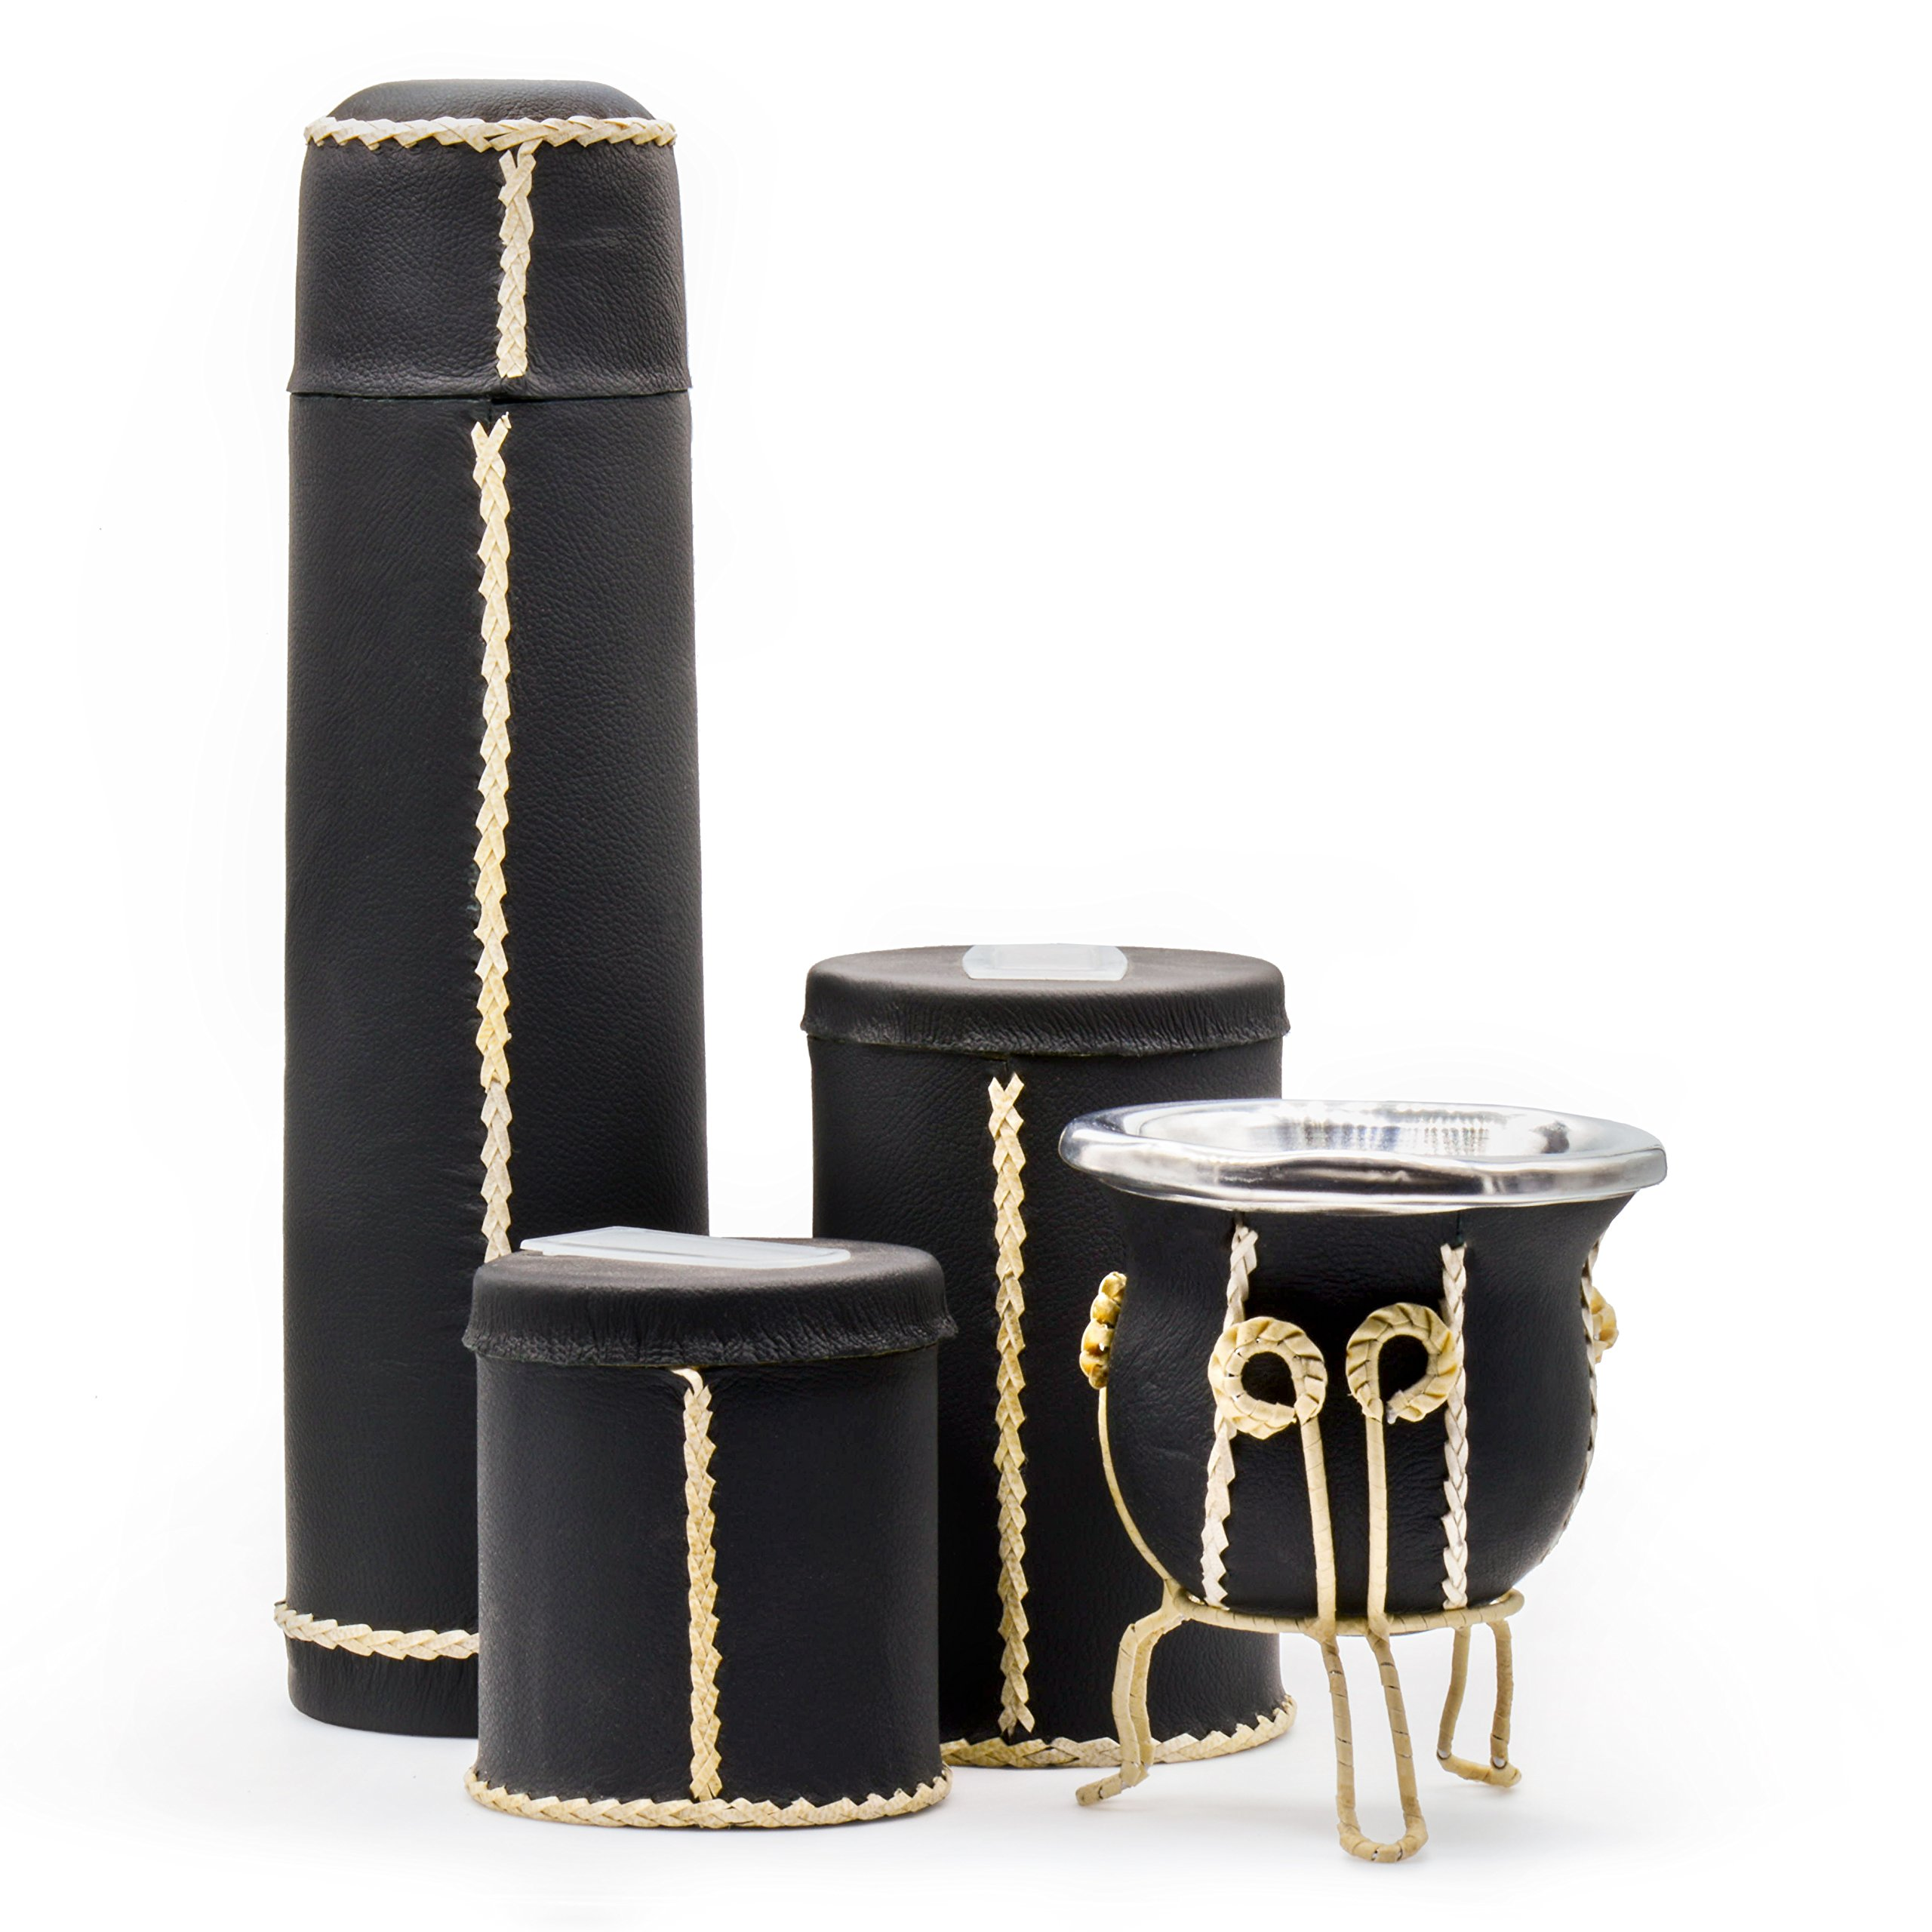 Leather Yerba Mate Kit and Accessories  mate bag, gourd, bombilla, thermos flask, herb container (Black)